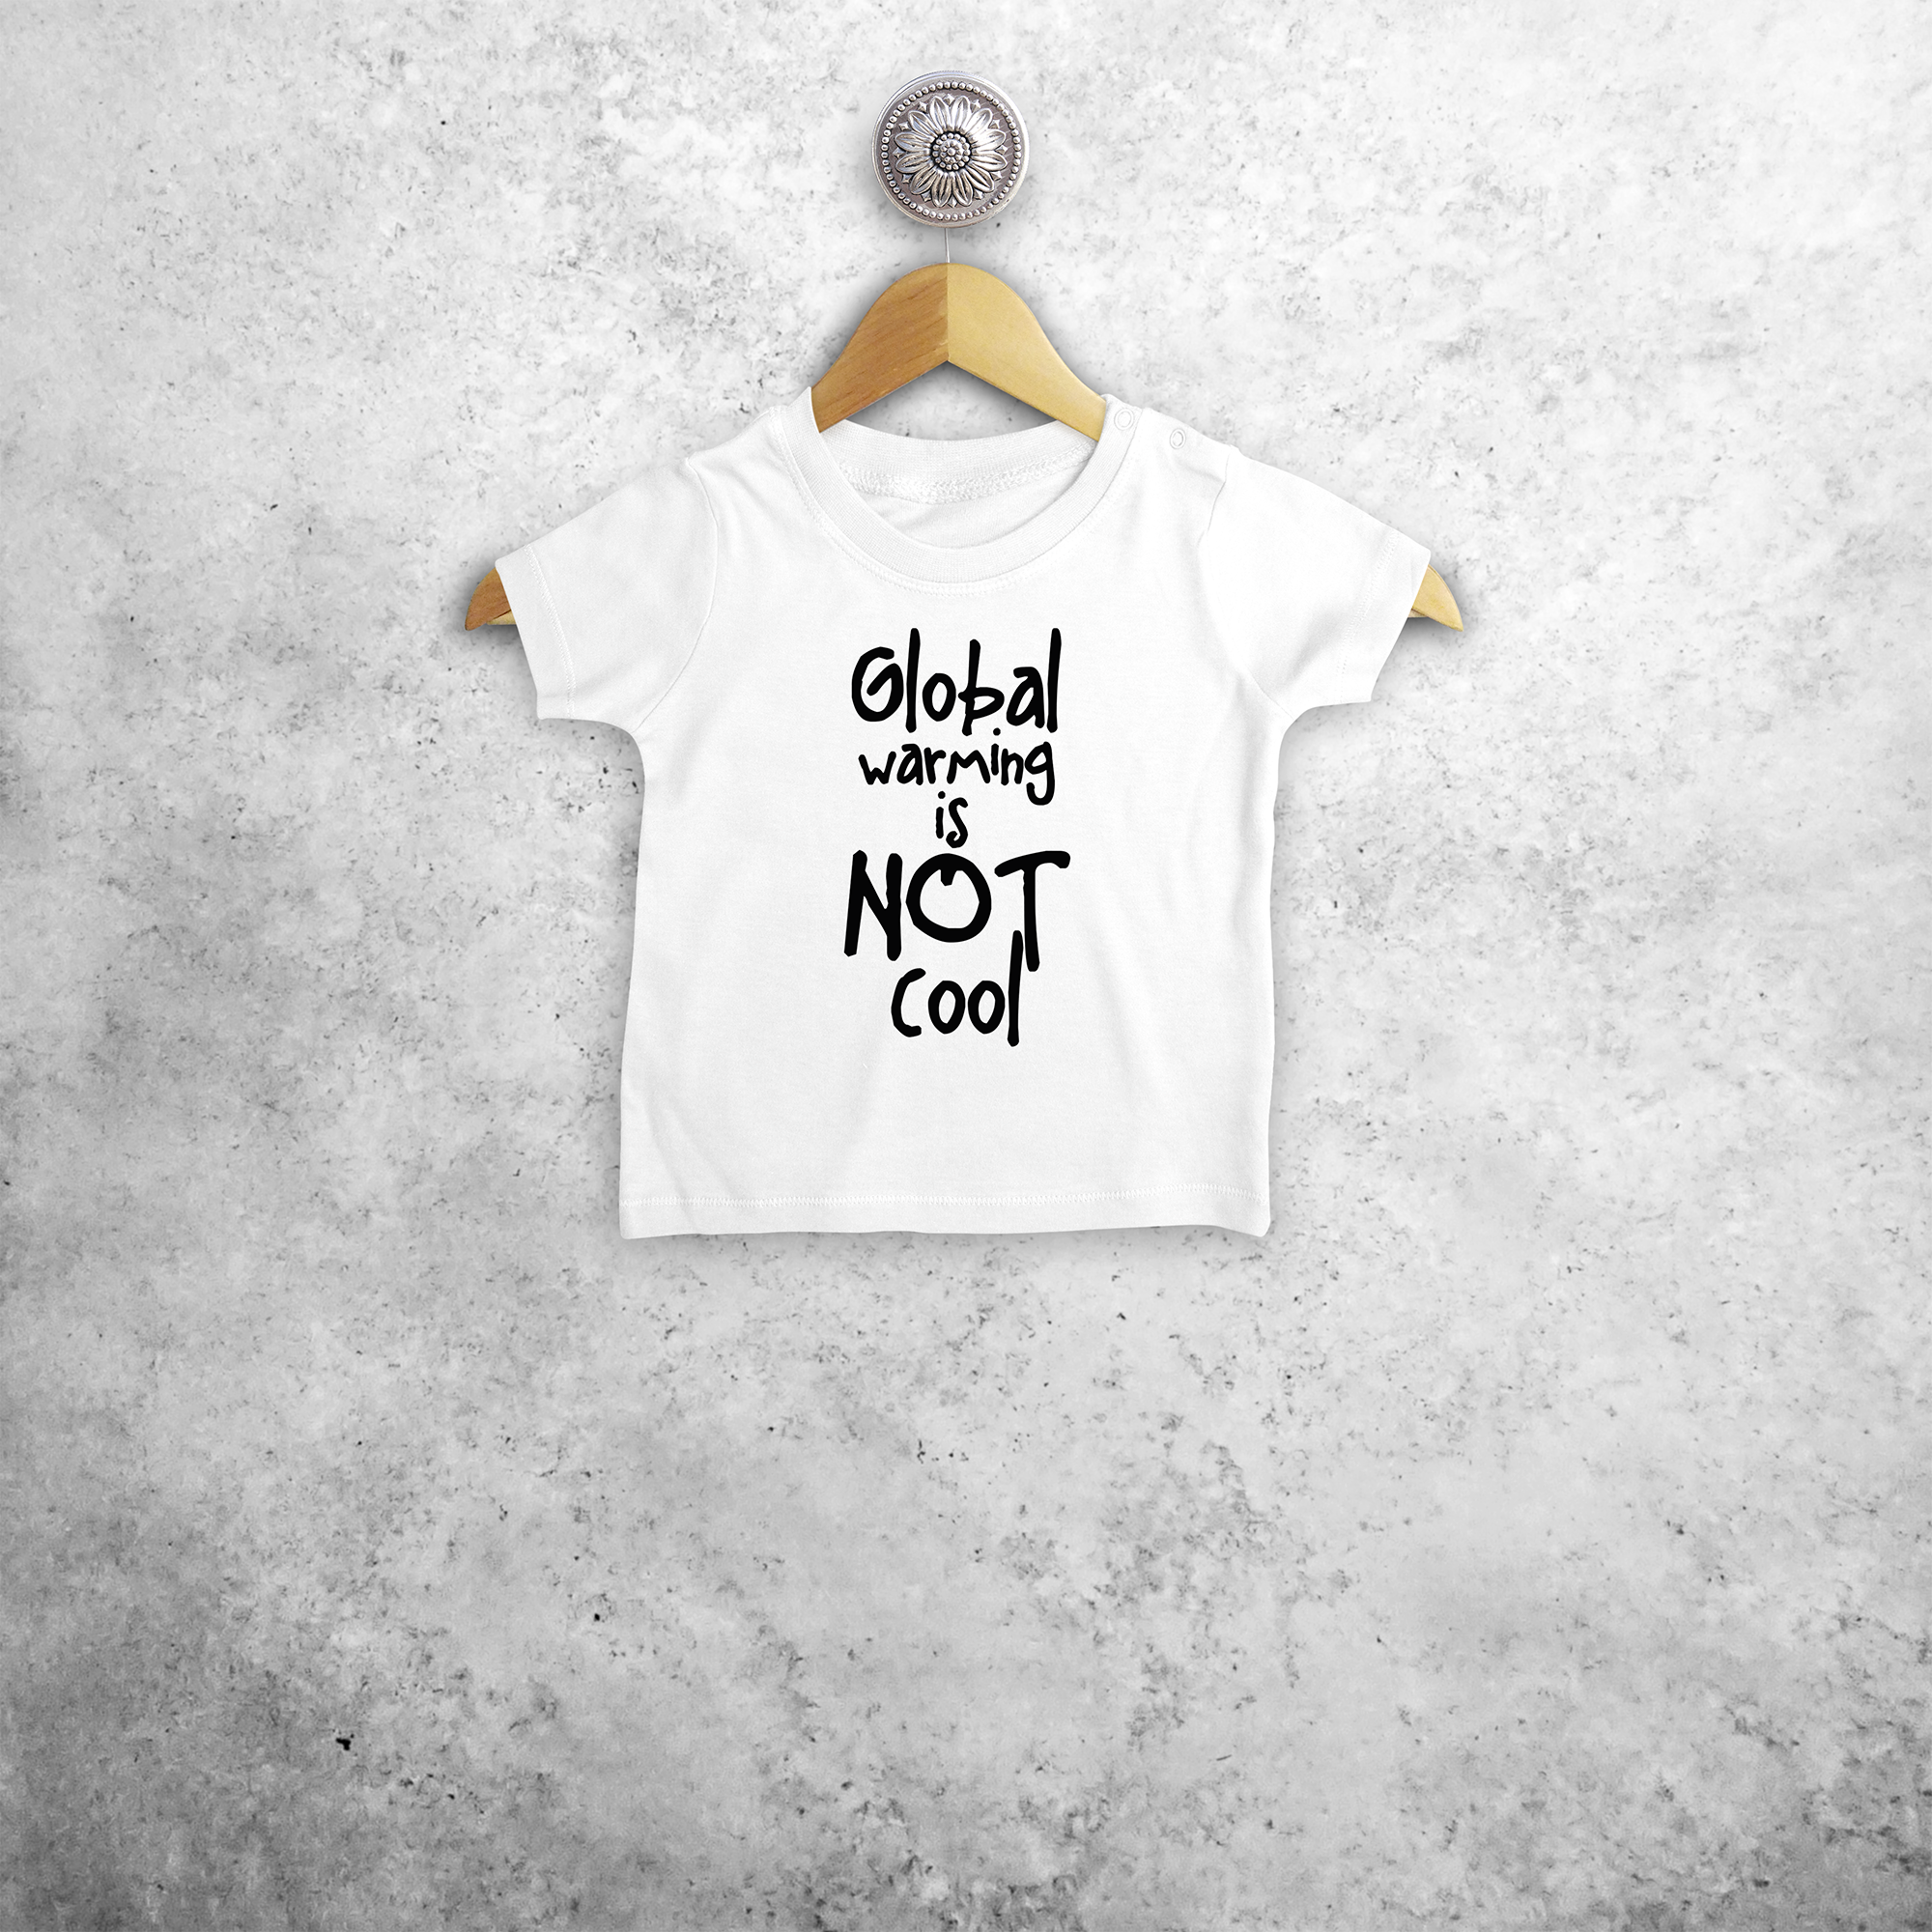 'Global warming is not cool' baby shortsleeve shirt